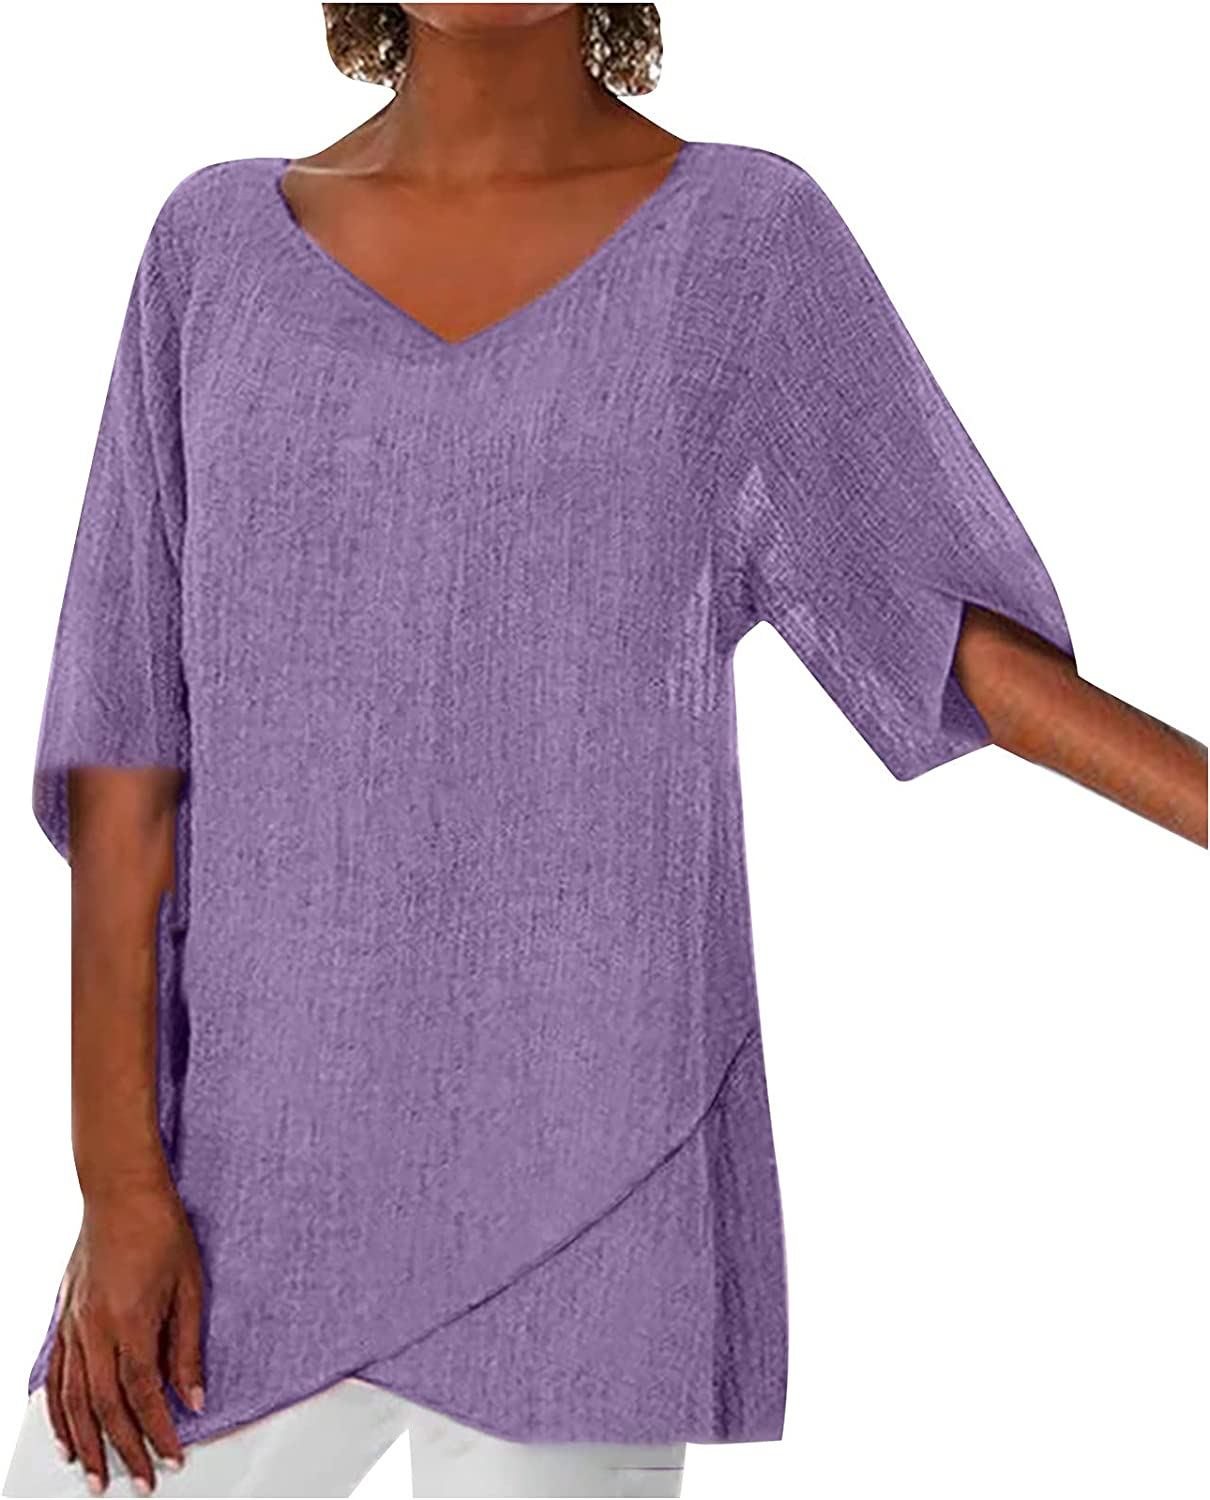 3/4 Sleeve Shirts for Women Cotton Linen Tshirt Tops Casual Loose Fit Tunic Tees Stripe V Neck Comfy Soft Blouse